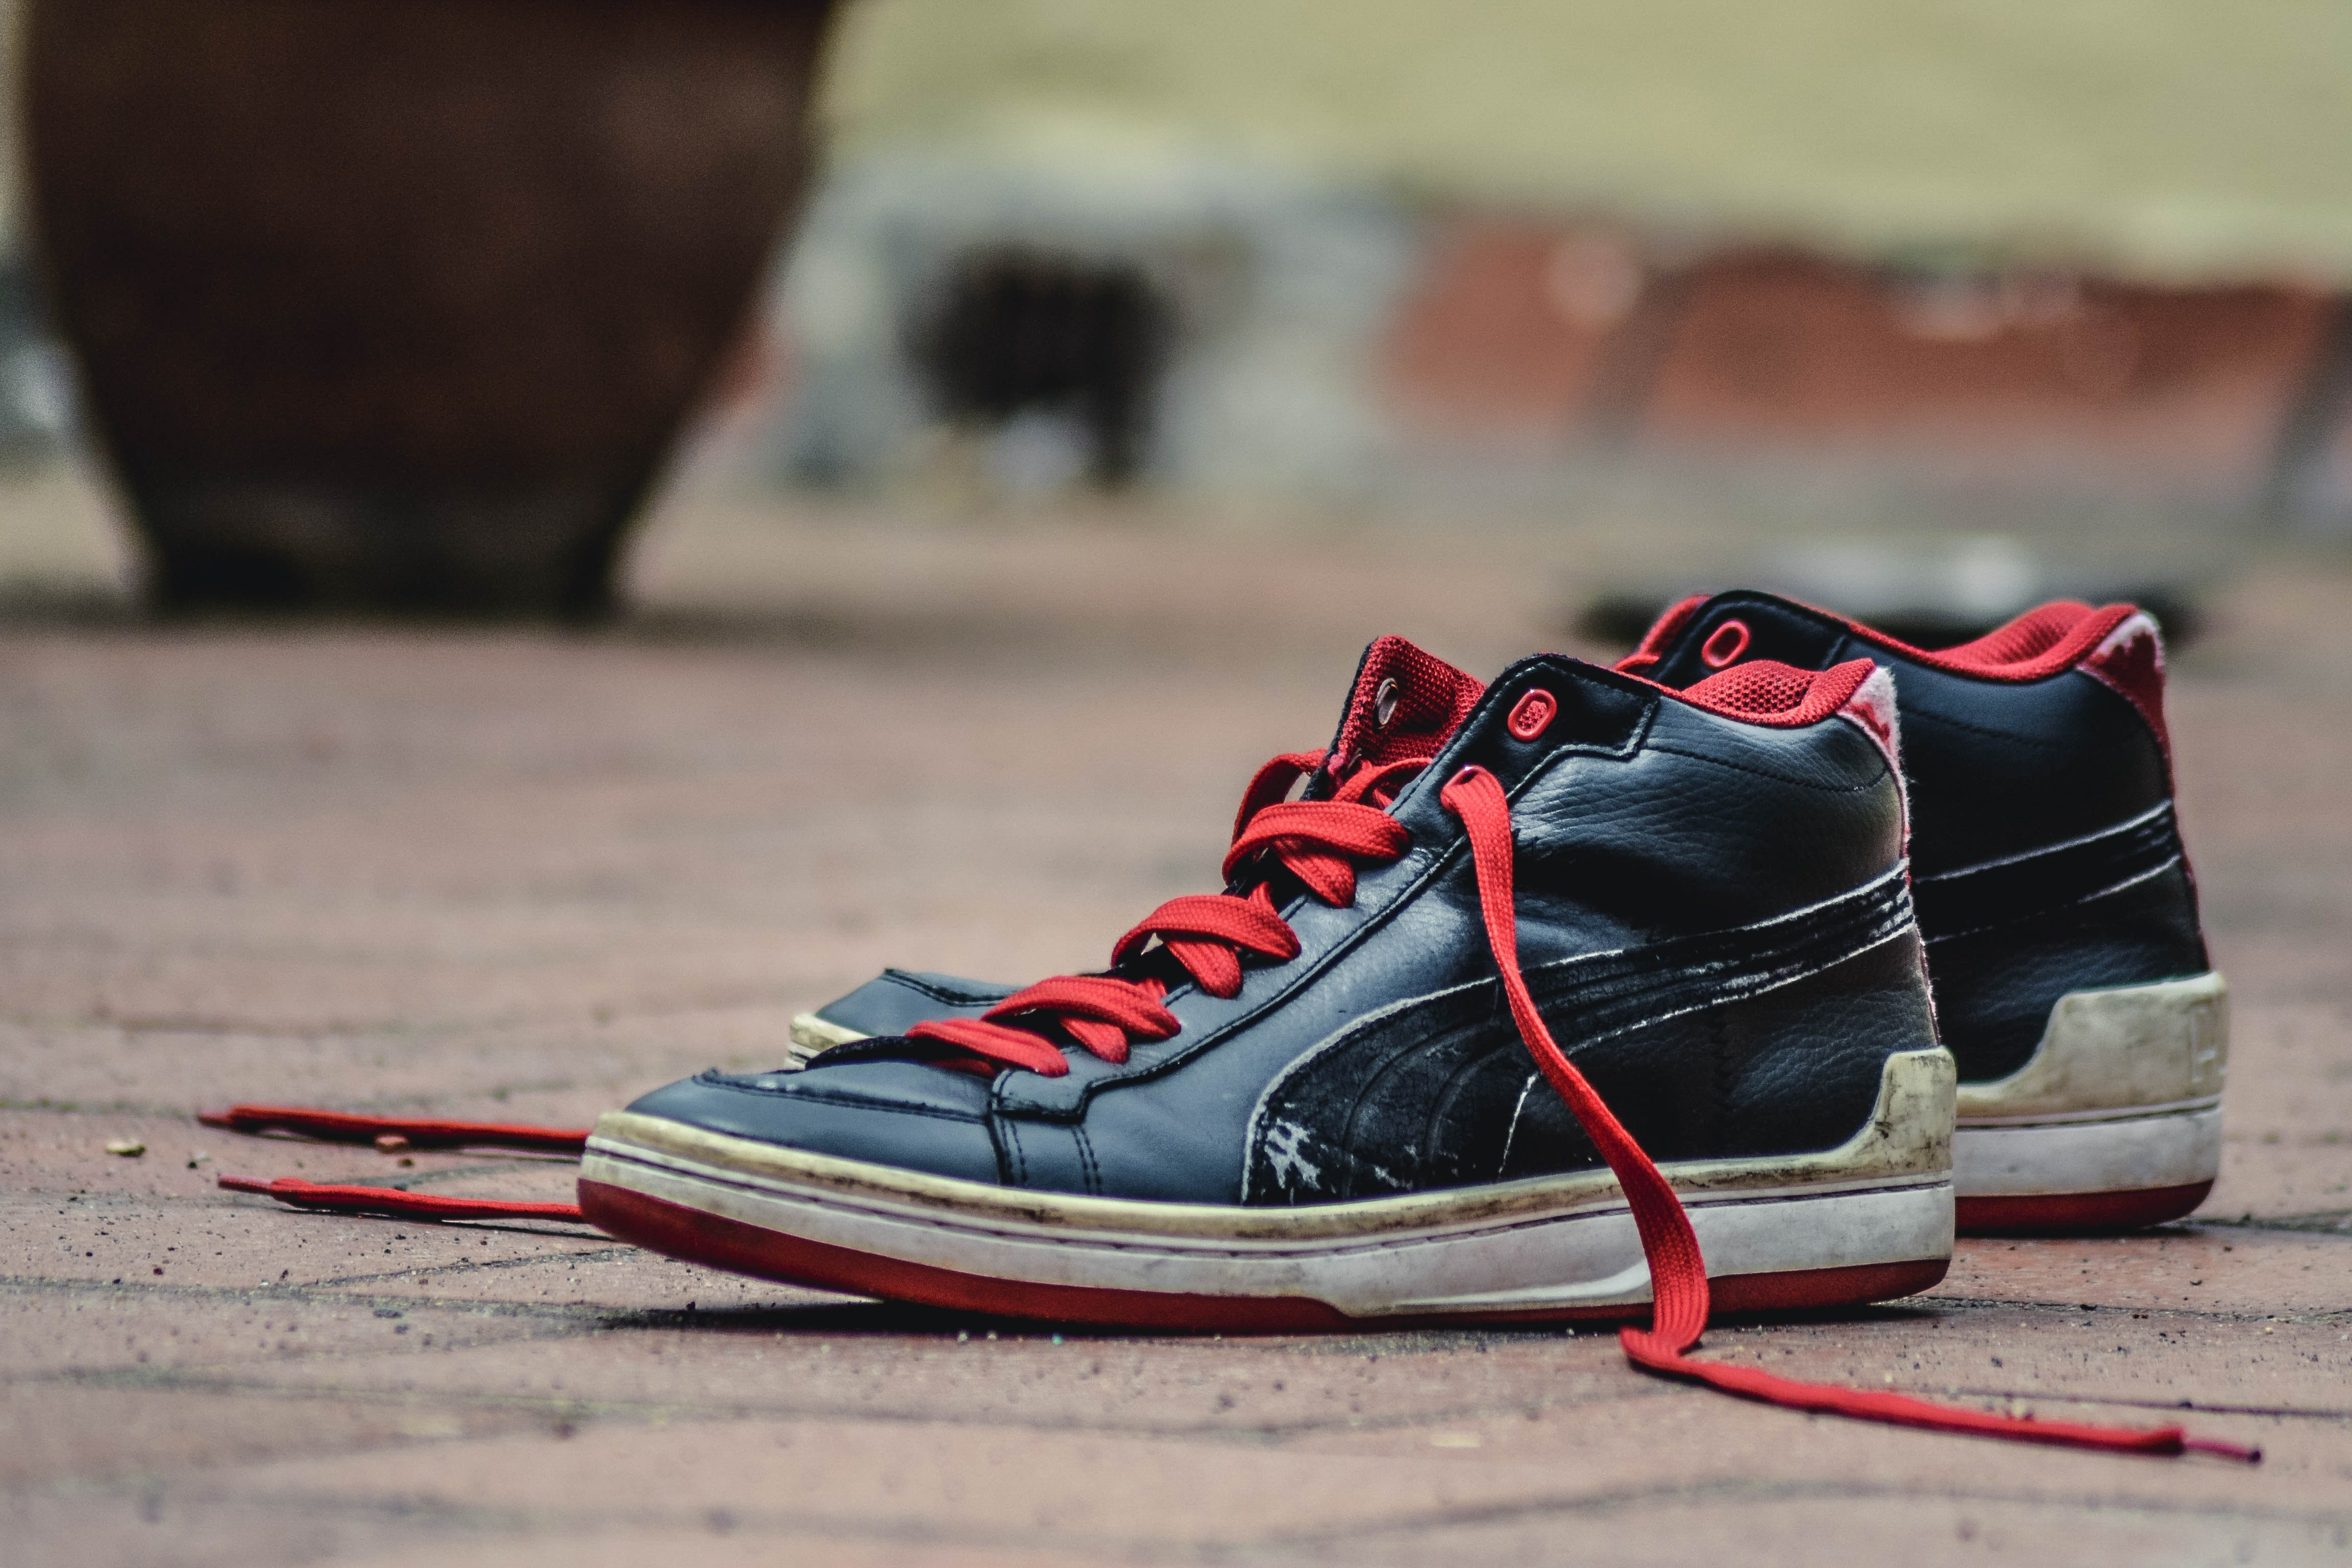 I started noticing shoes everywhere | Photo: Pexels